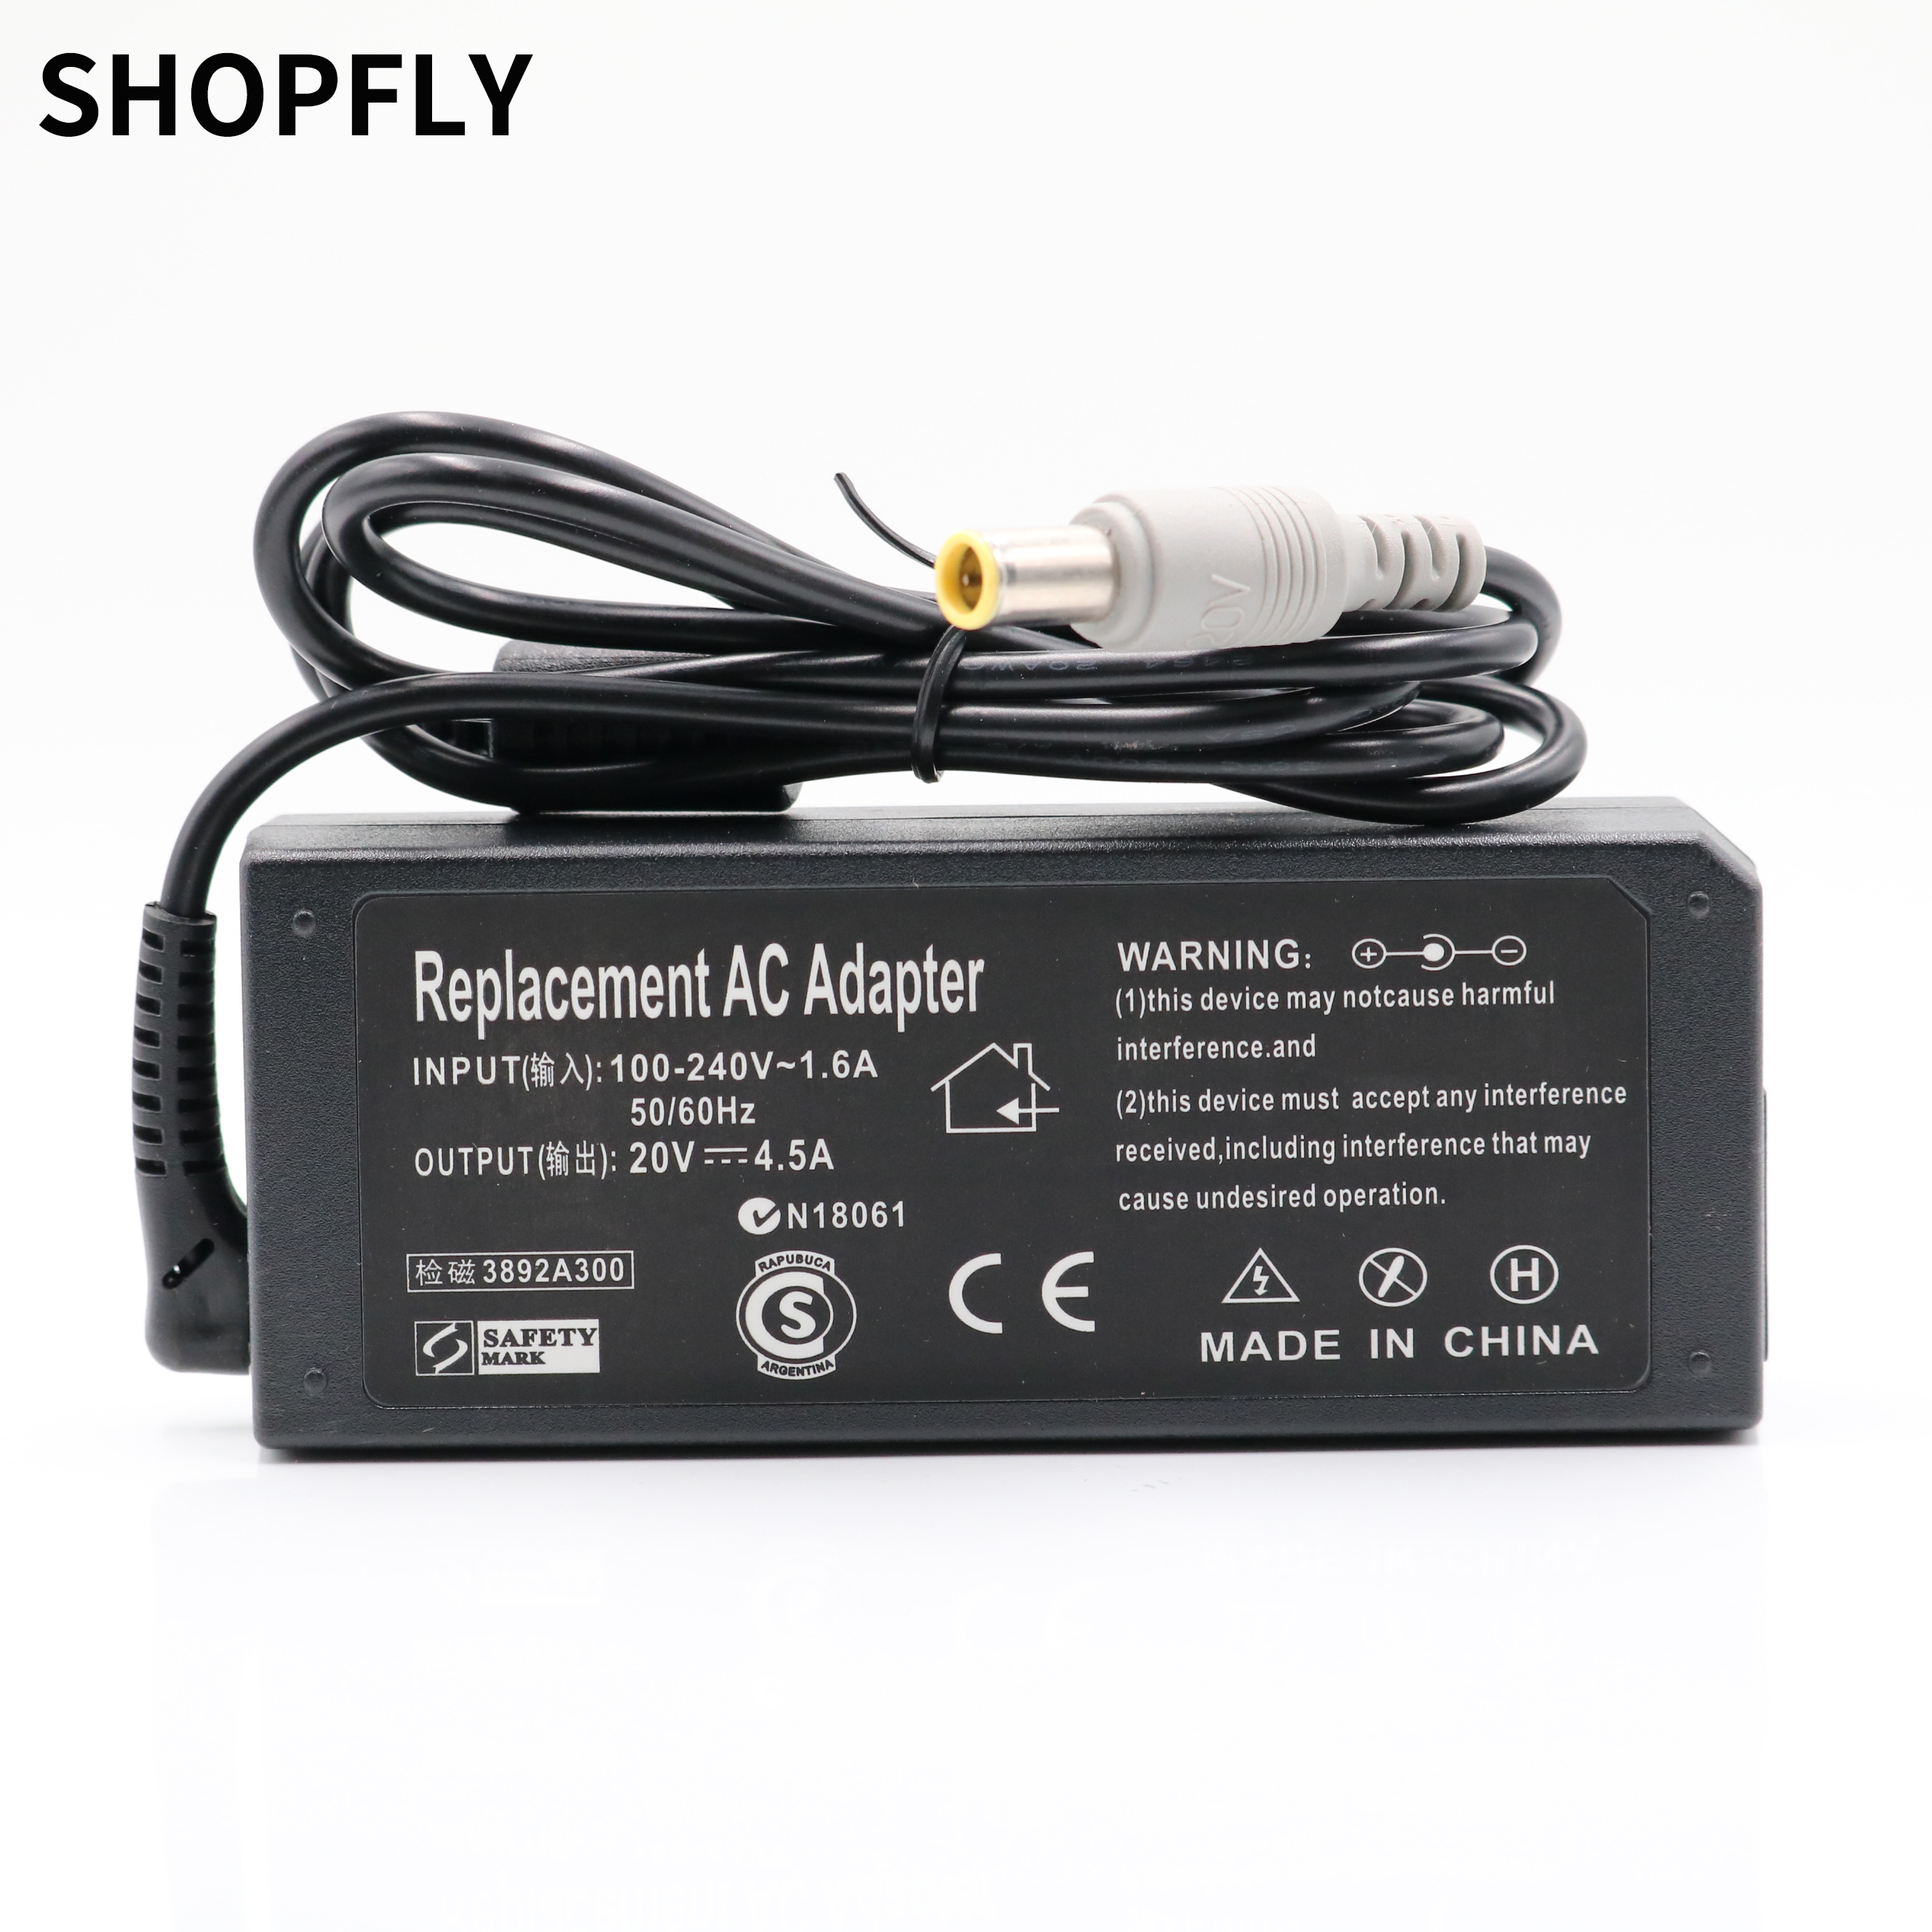 <font><b>20V</b></font> 4.5A 90W Laptop <font><b>Ac</b></font> <font><b>Adapter</b></font> Charger for Lenovo / Thinkpad T400 T410 T420 T430 T500 T510 T520 T530 T400s T410s T410i image